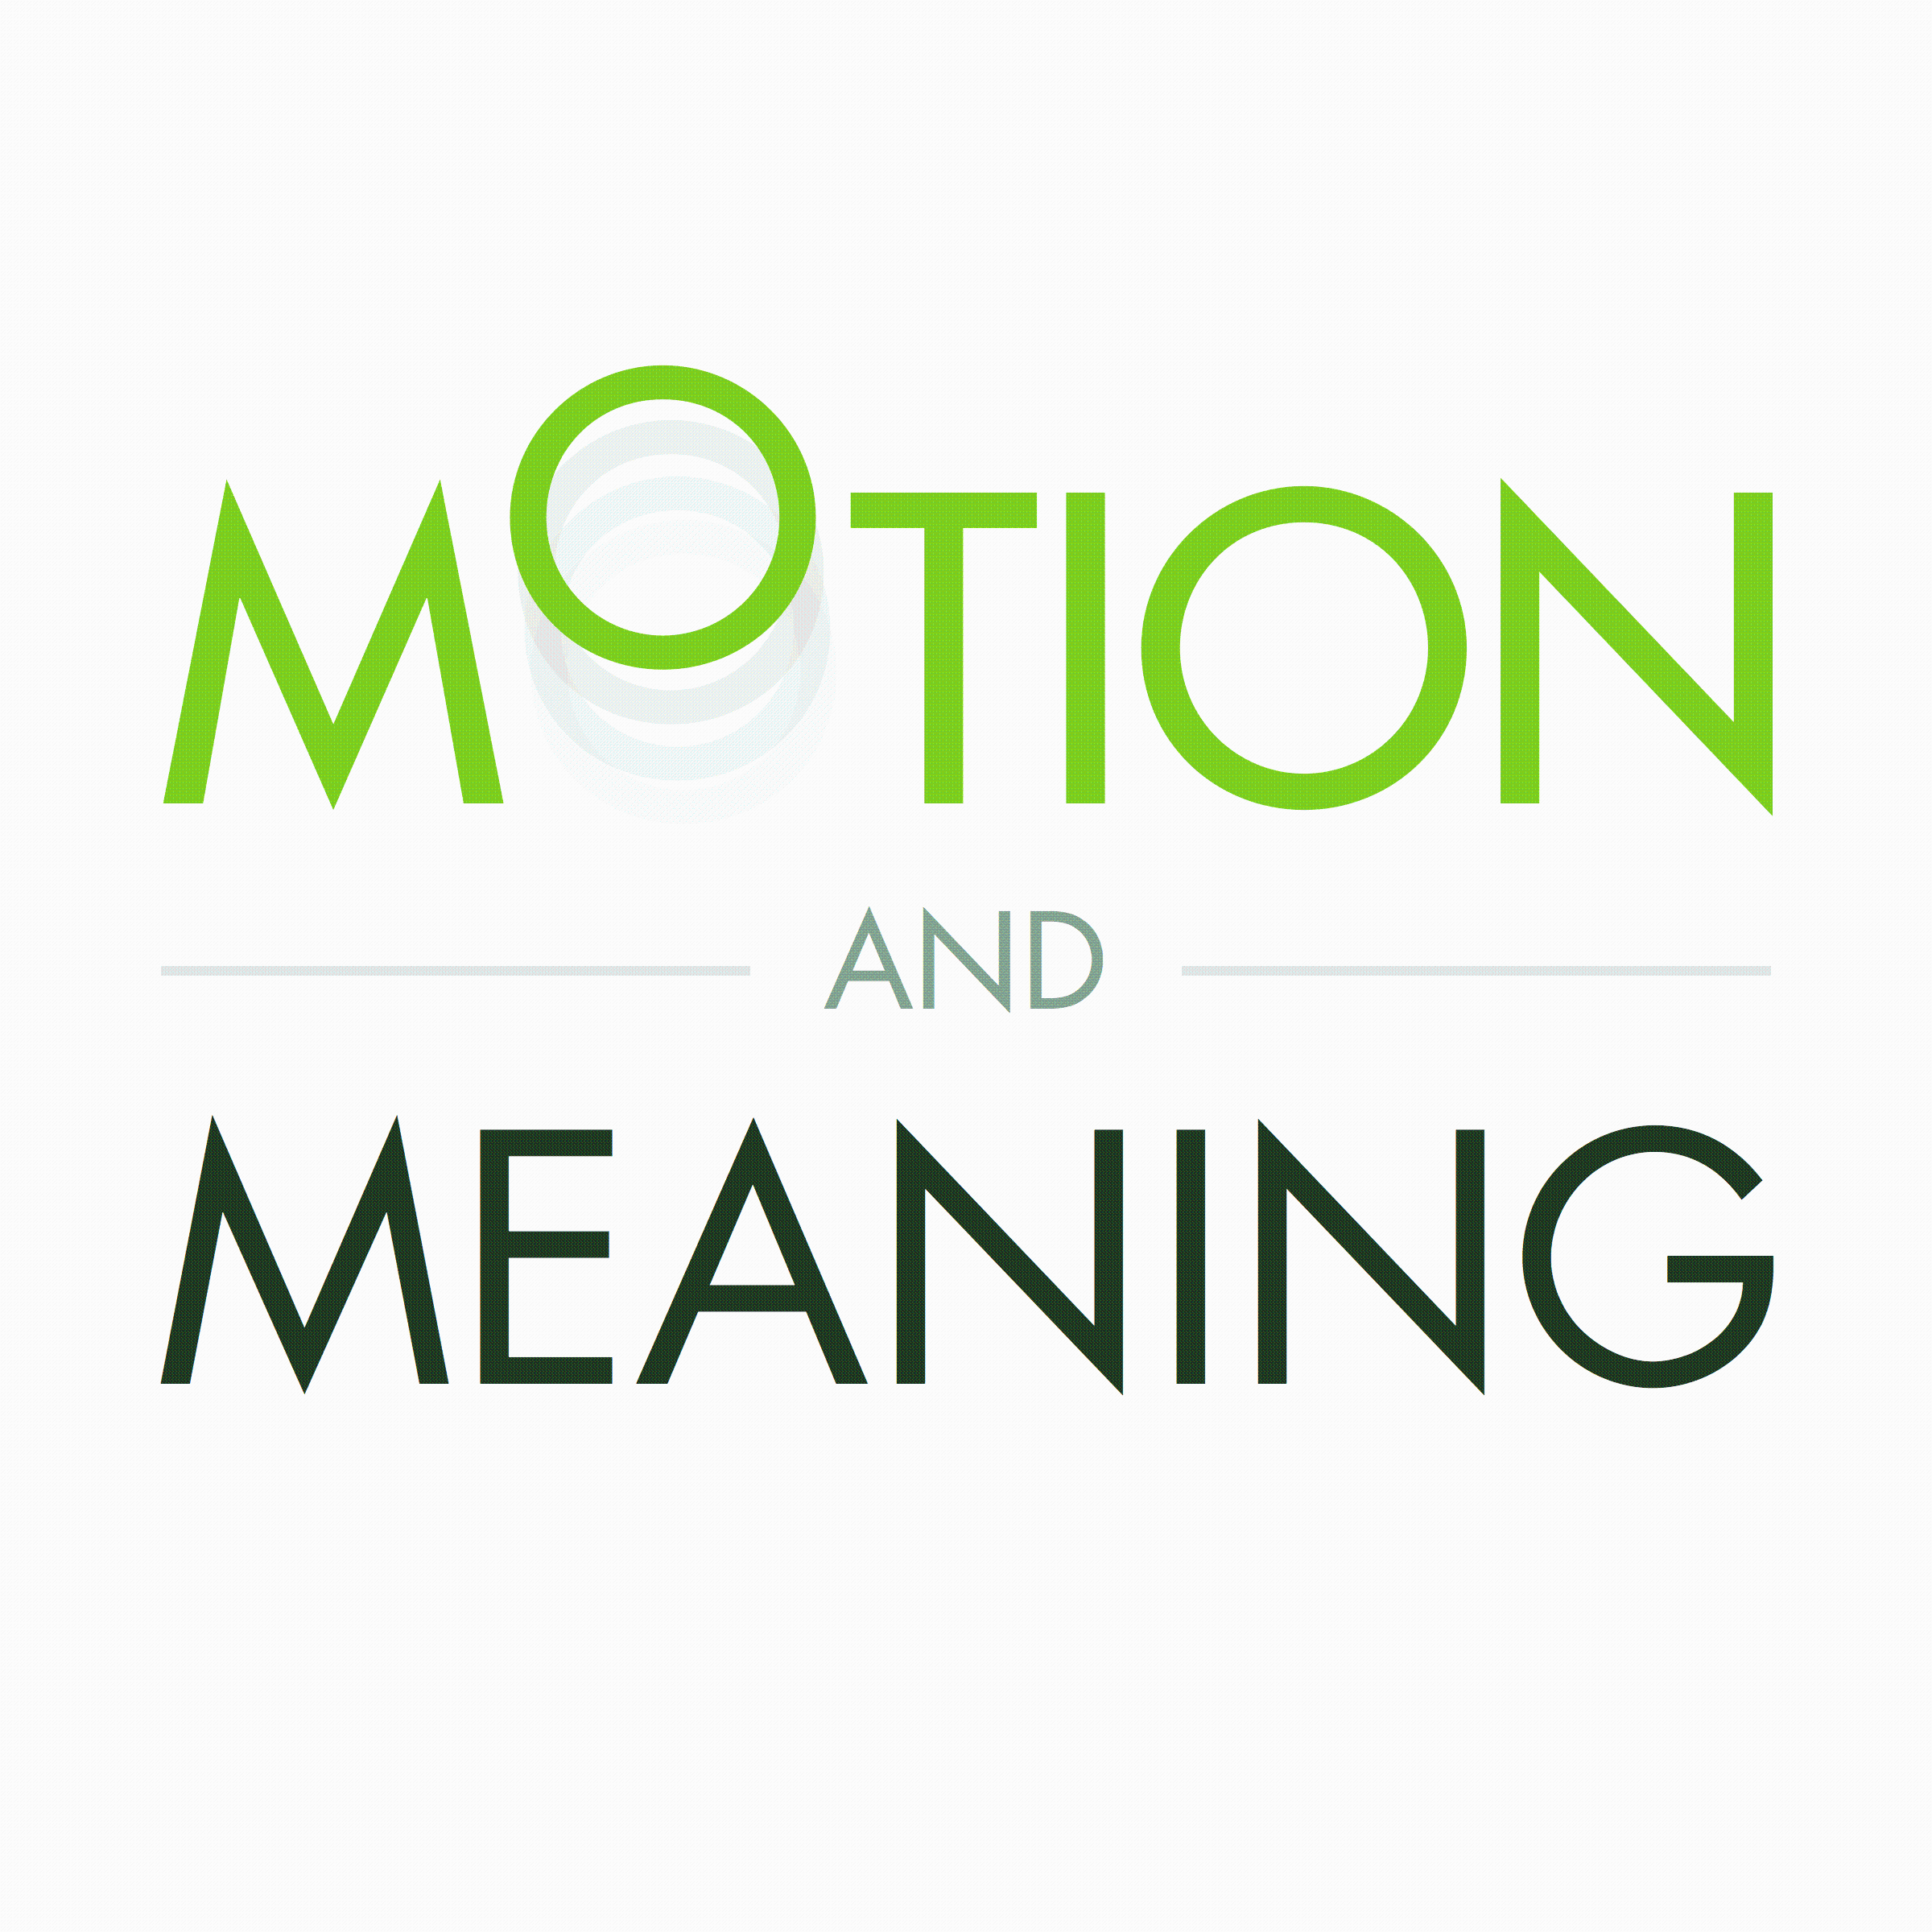 motionandmeaning-min.png